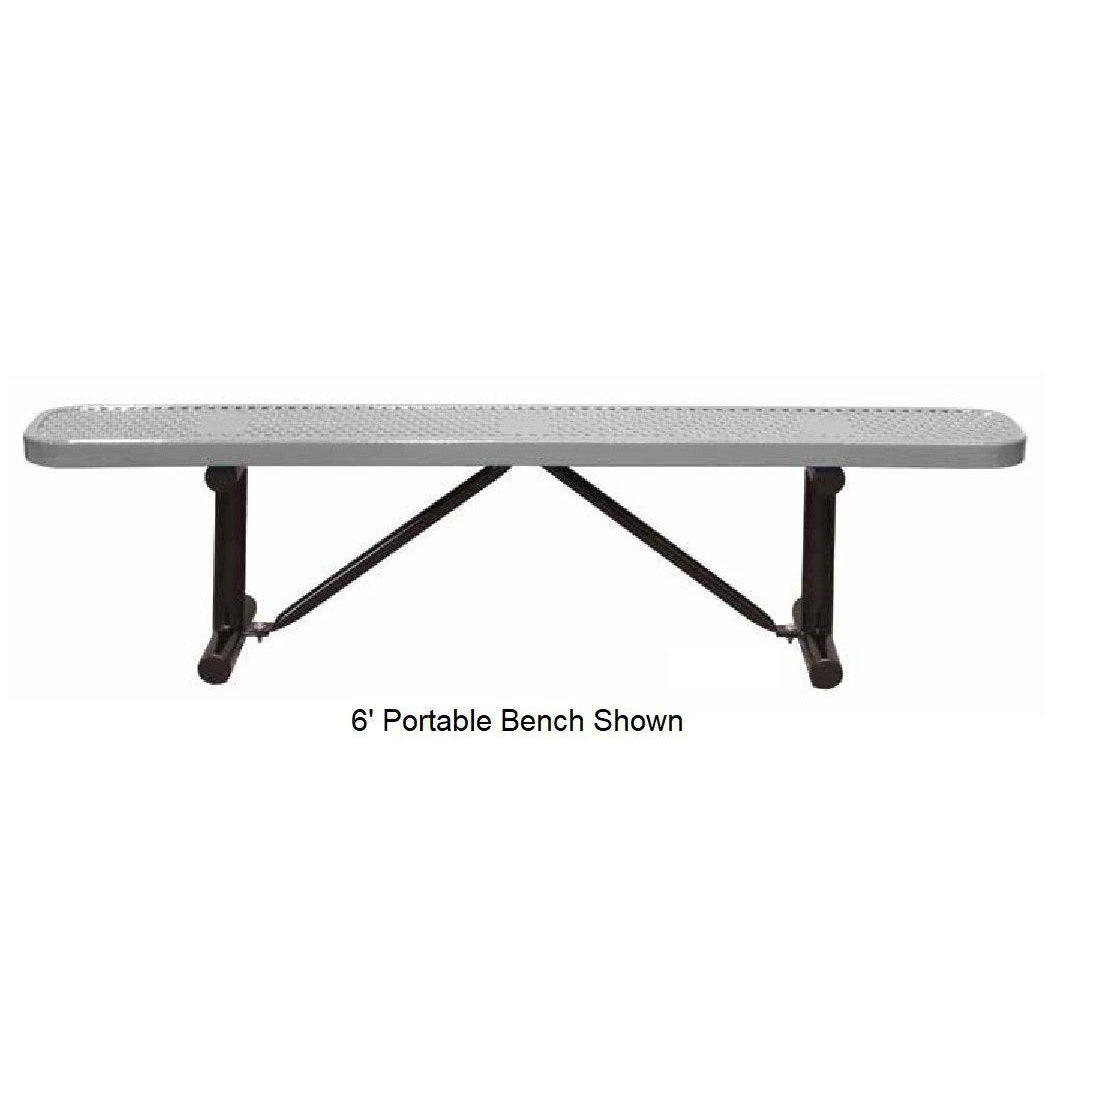 15' Standard Perforated Bench Without Back, In Ground Mount